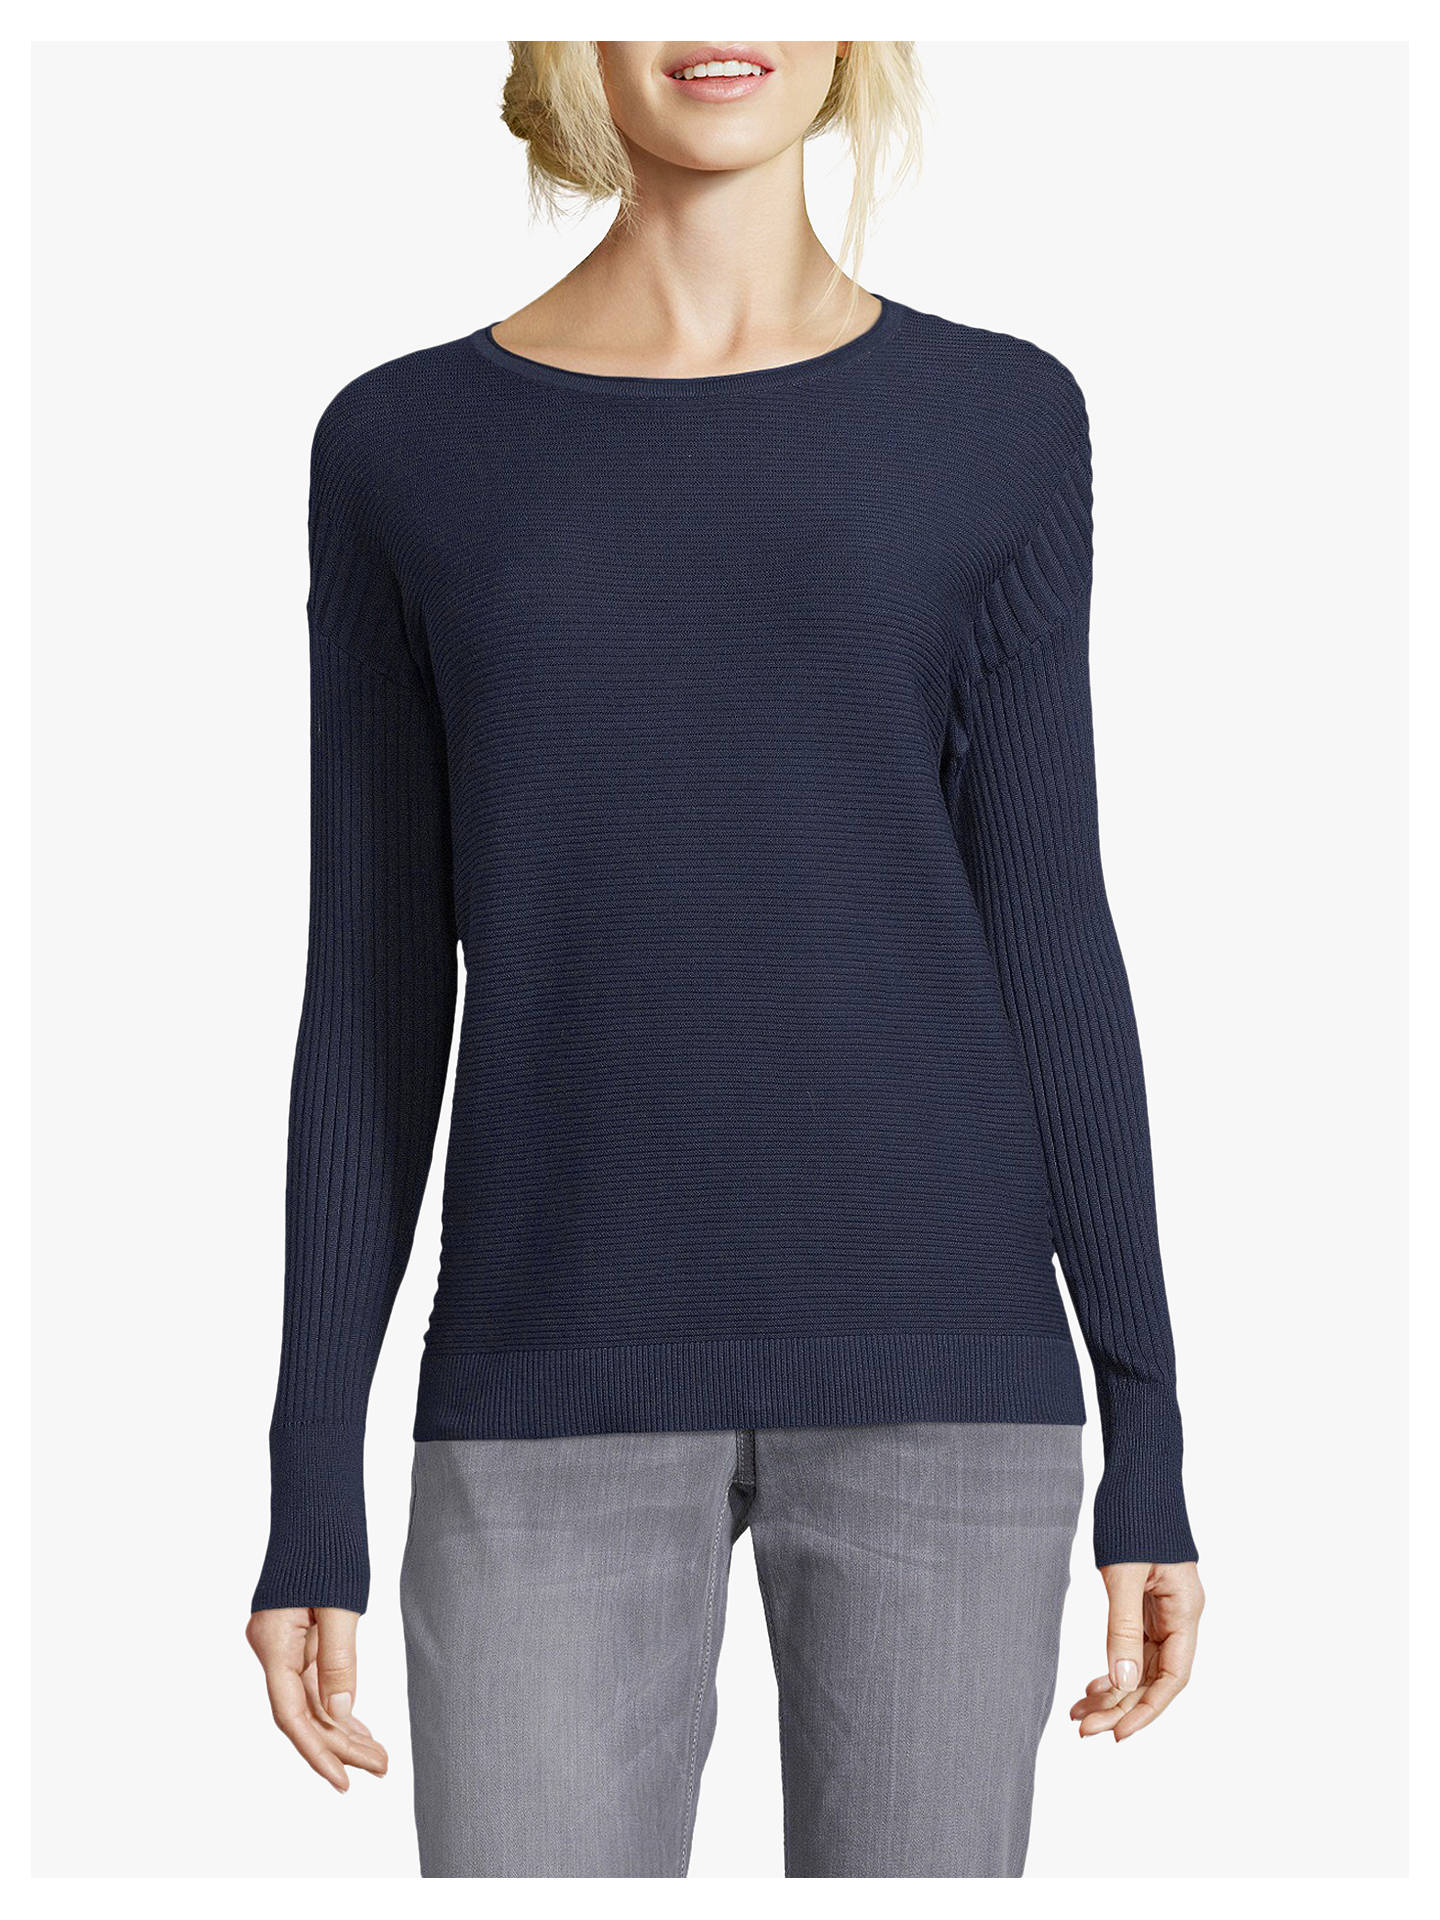 BuyBetty Barclay Multi Texture Ribbed Knit Jumper 90f0ed84a